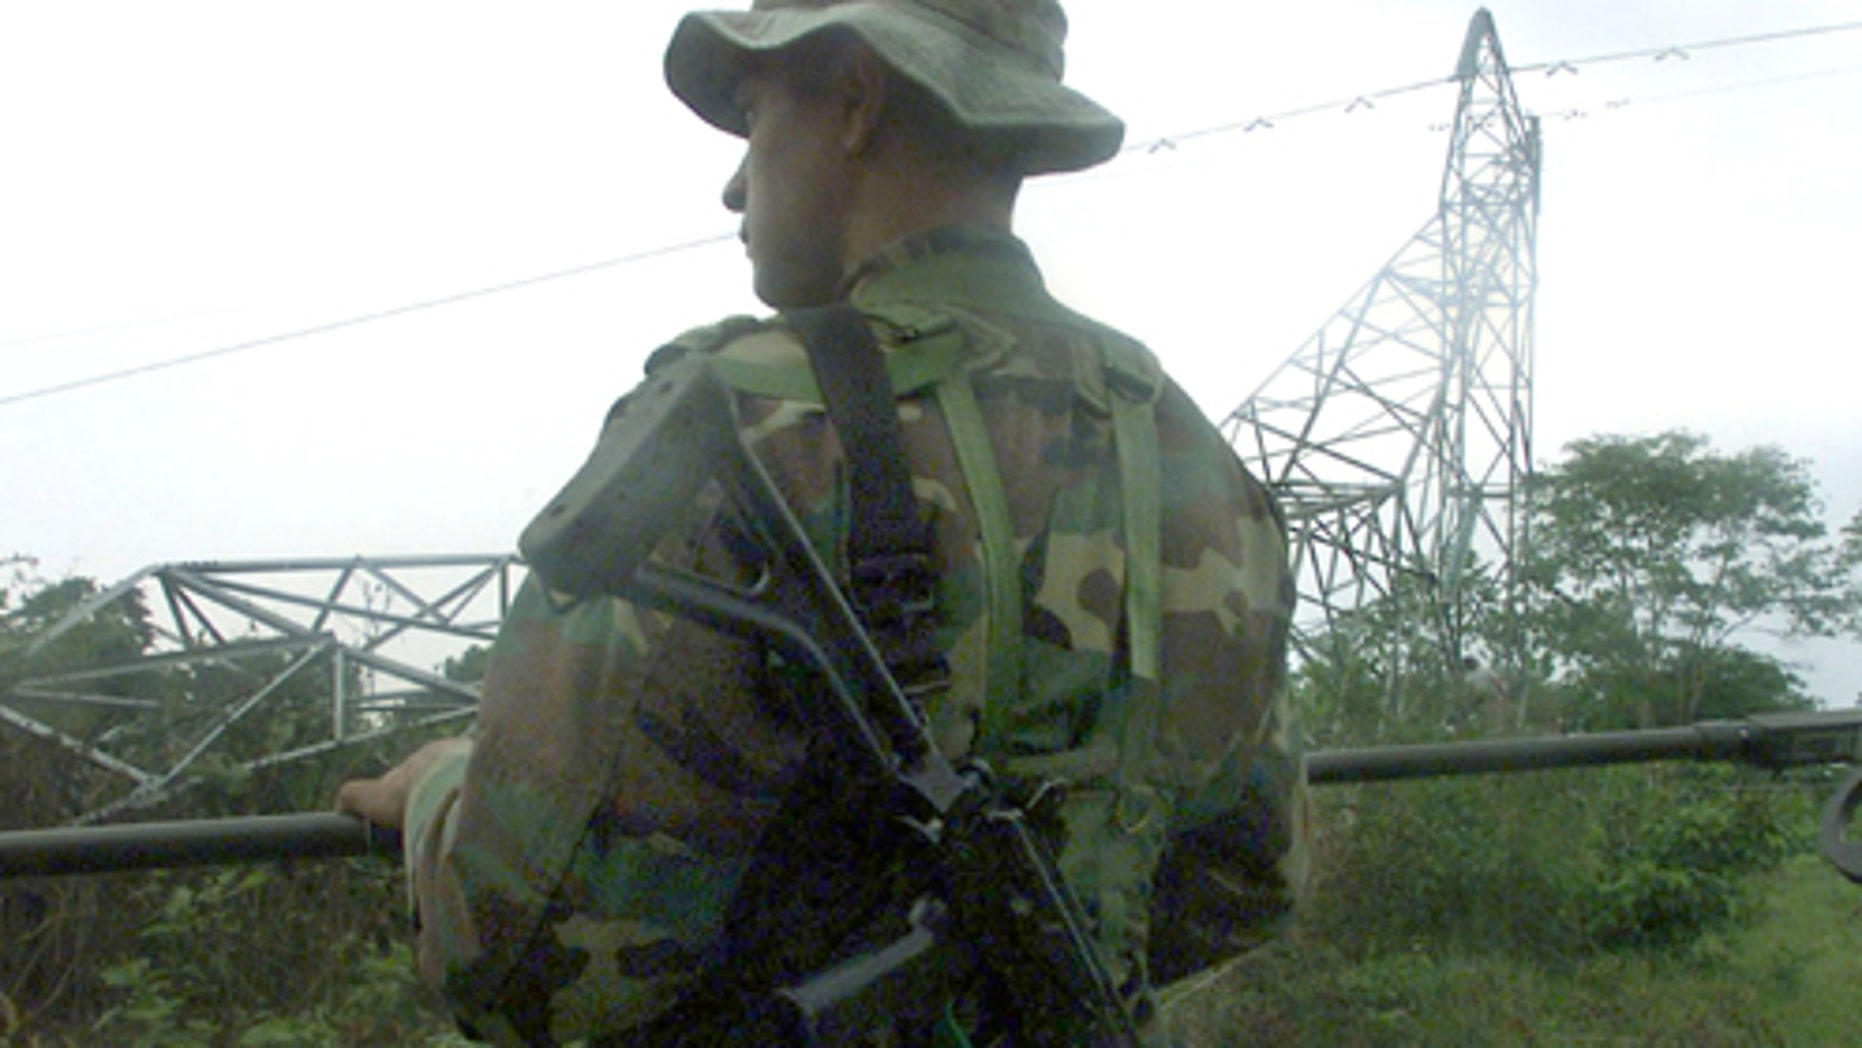 403962 01: A Colombian soldier searches for possible land mines left by the FARC, The Revolutionary Armed Forces of Colombia, after the group dynamited an energy tower owned by the state operated national energy distribution network, ISA, April 15, 2002 in Saravena, Colombia. The companys energy towers have been attacked repeatedly this year by the guerrilla group in a war against state-owned infrastructure leaving entire states without energy, sometimes for weeks. (Photo by Carlos Villalon/Getty Images)